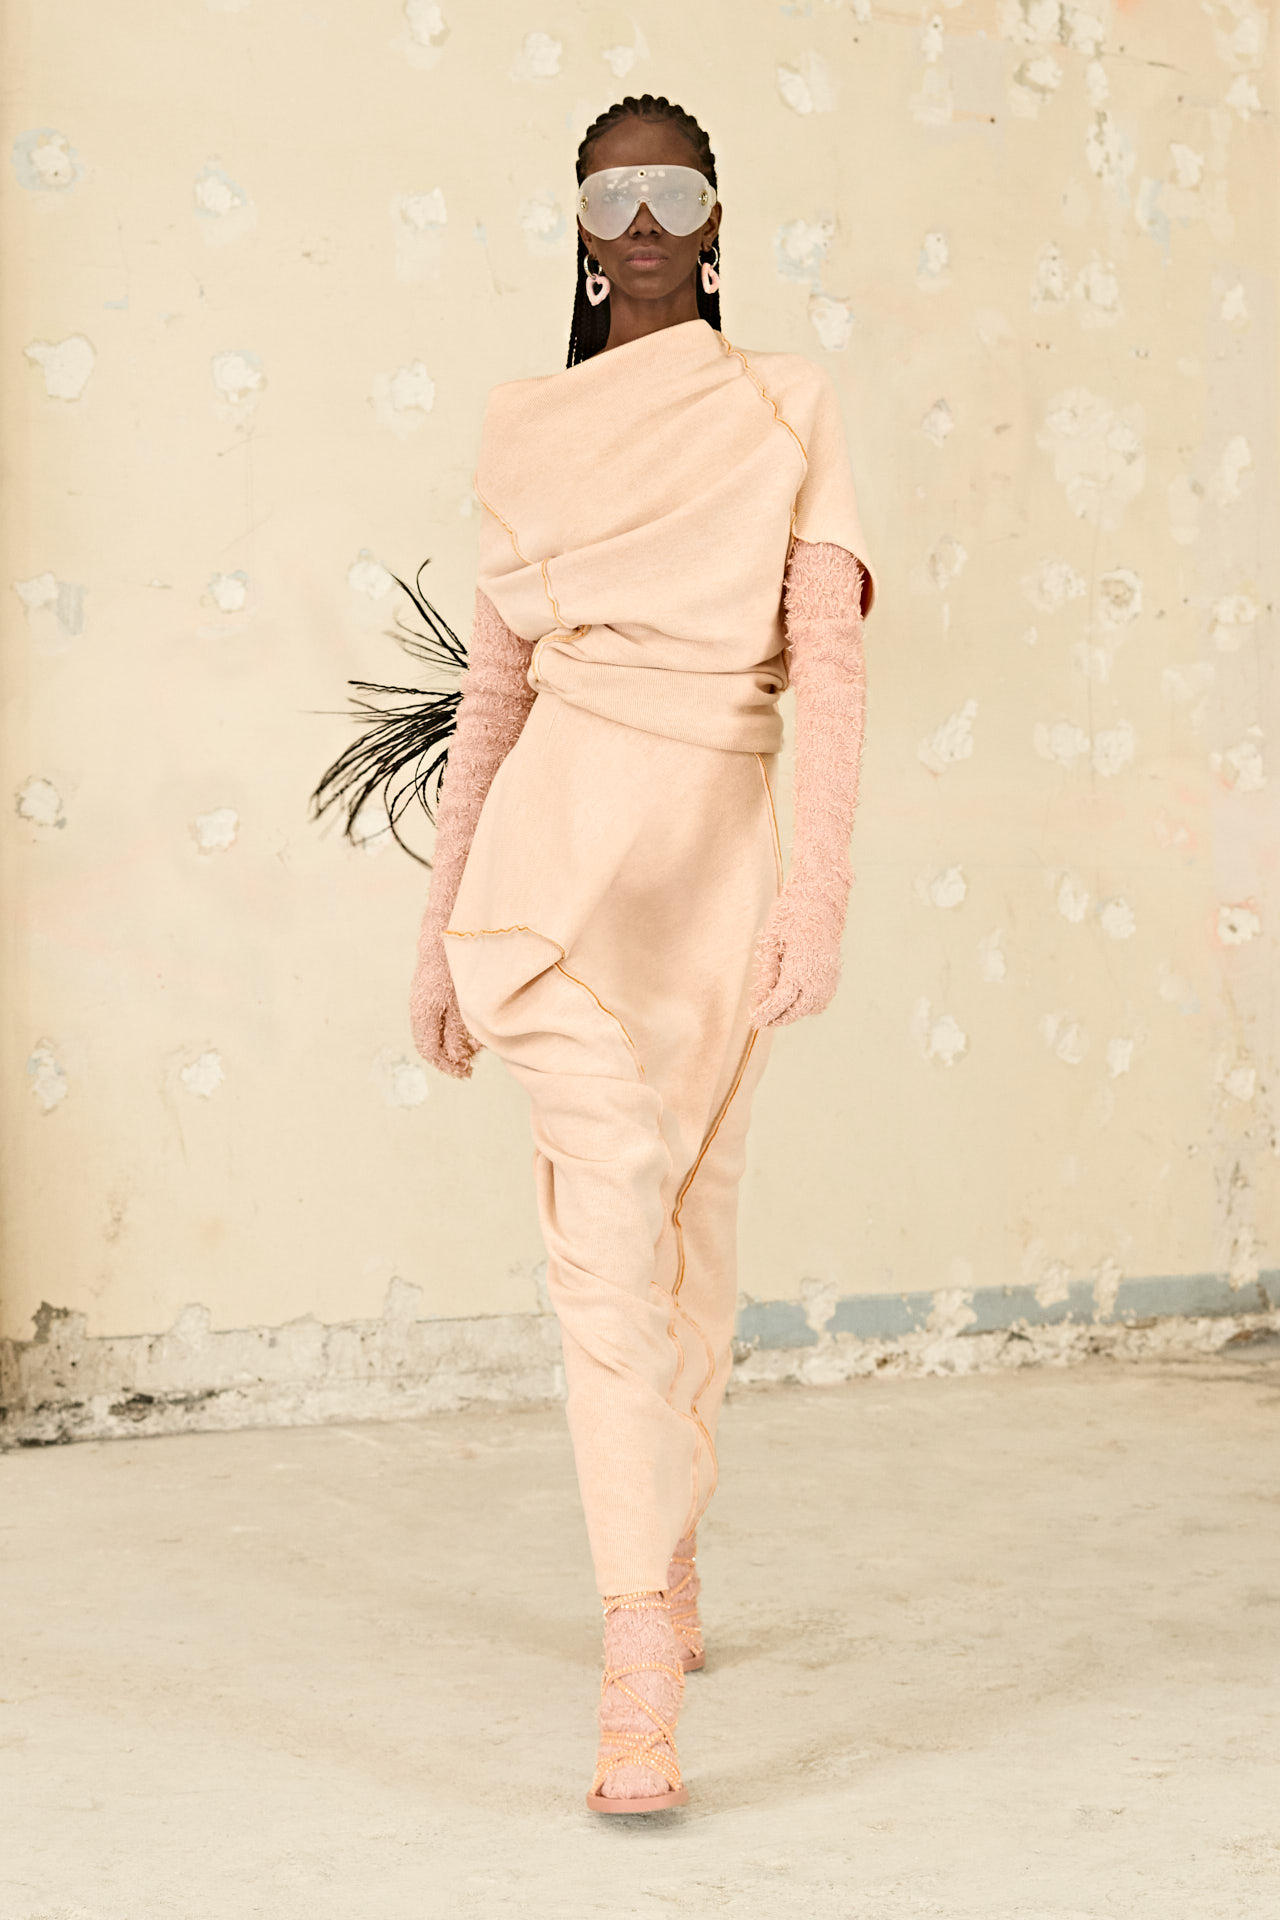 Look Fall/Winter 2021, image 23